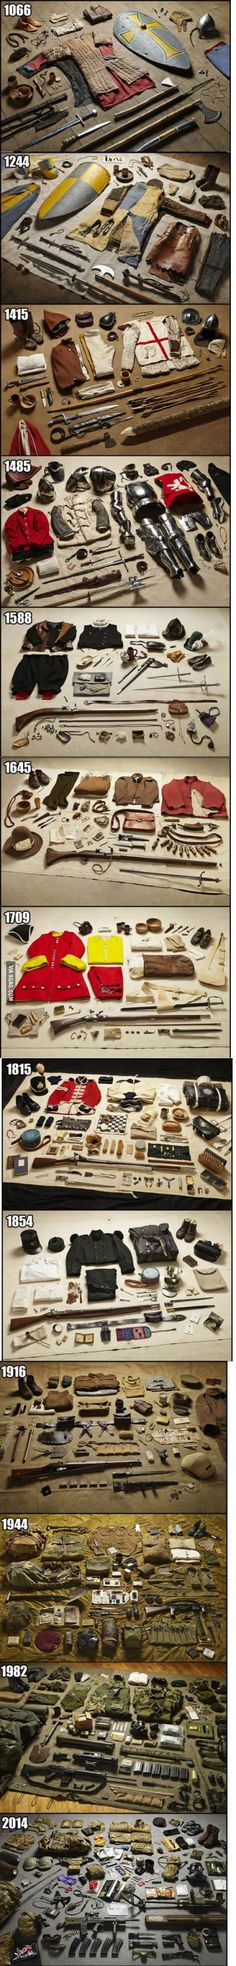 History of war uniforms in one image.